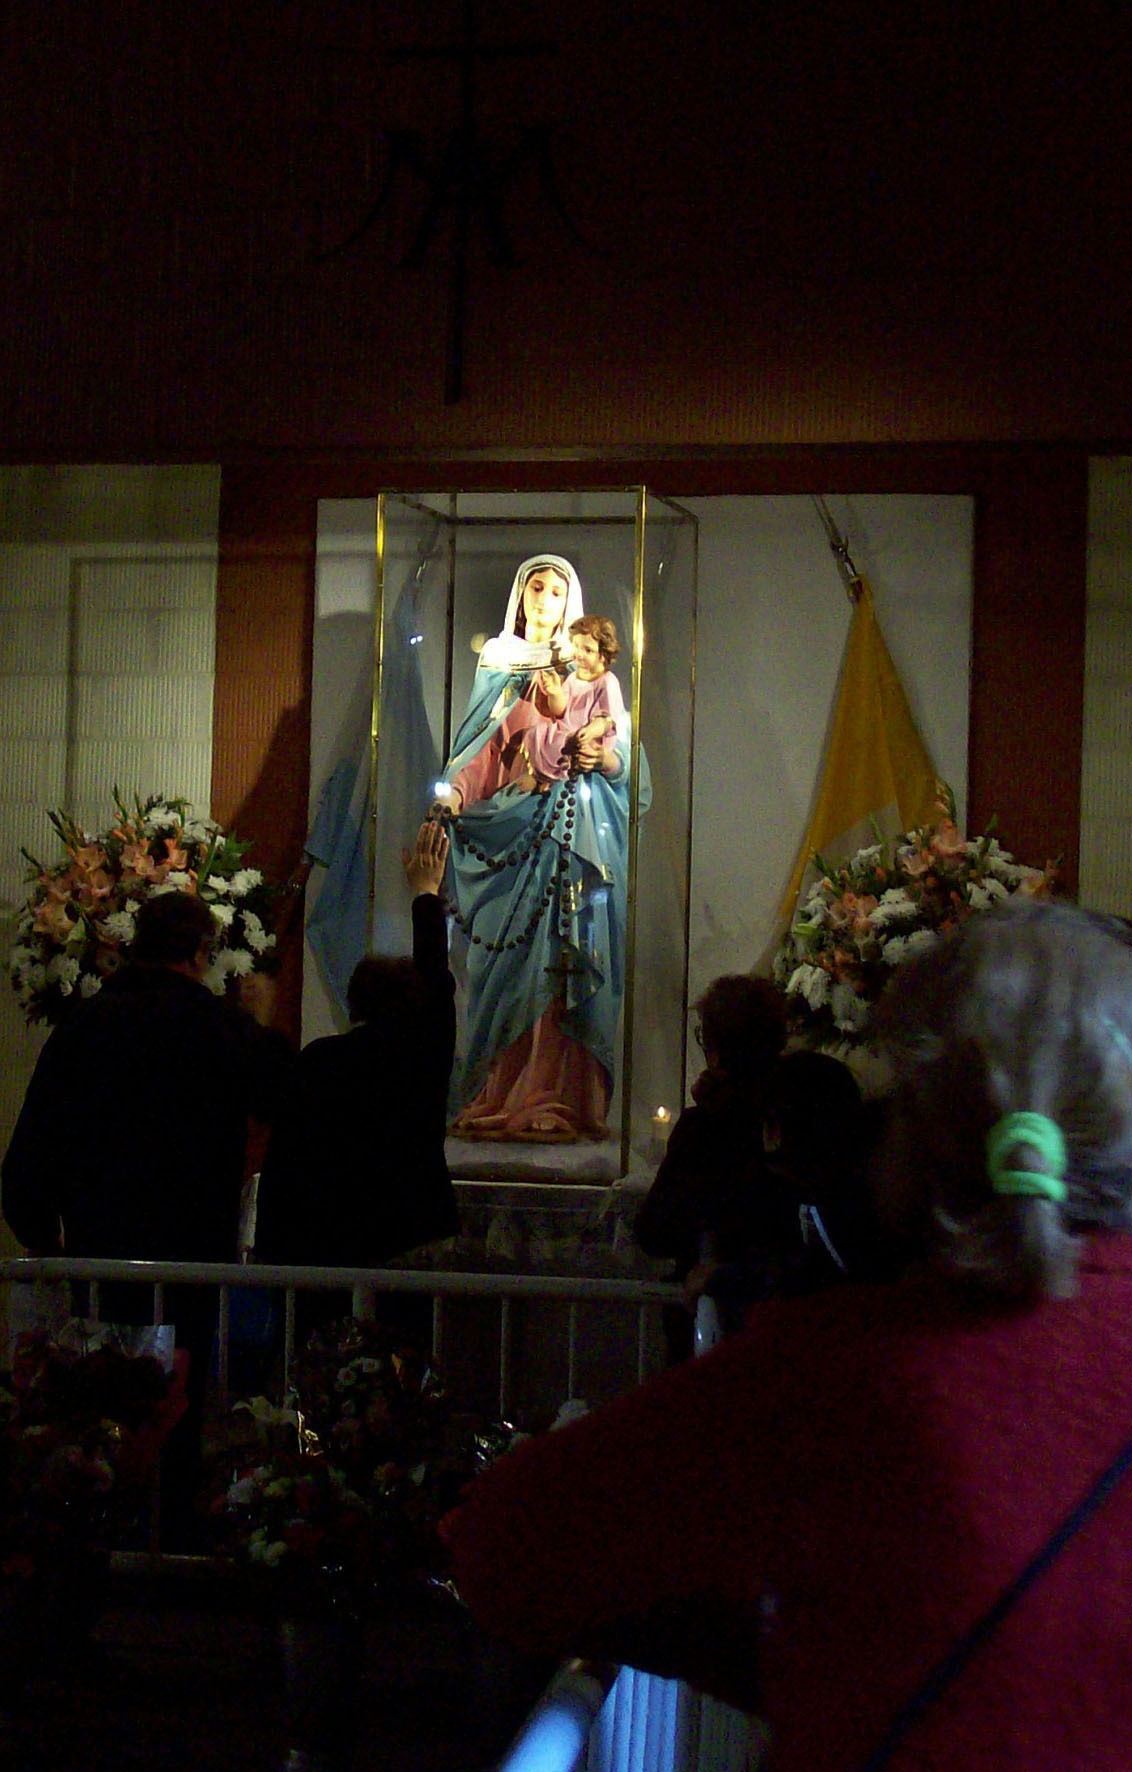 close-up of the statue of Our Lady of the Rosary, blessed by Pope Leo XIII